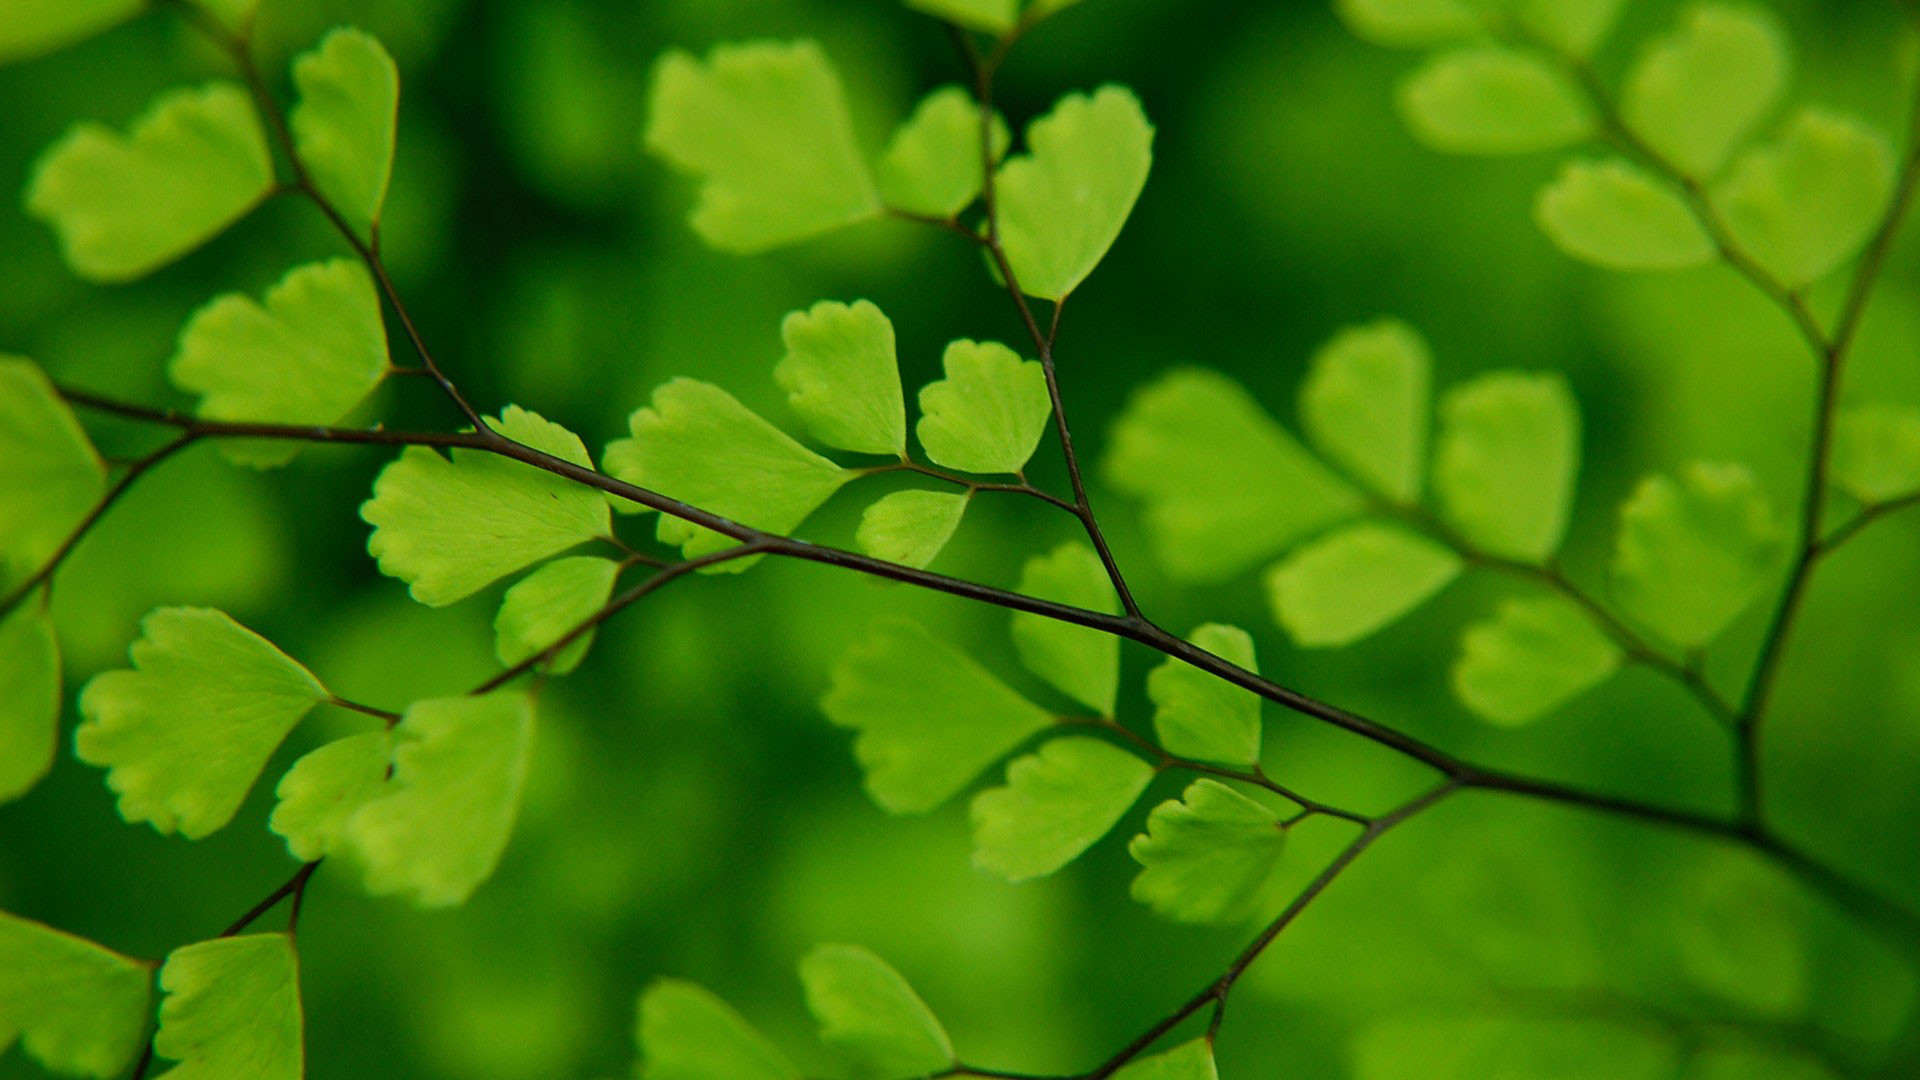 hd pics photos green leaves in nature cute desktop background wallpaper